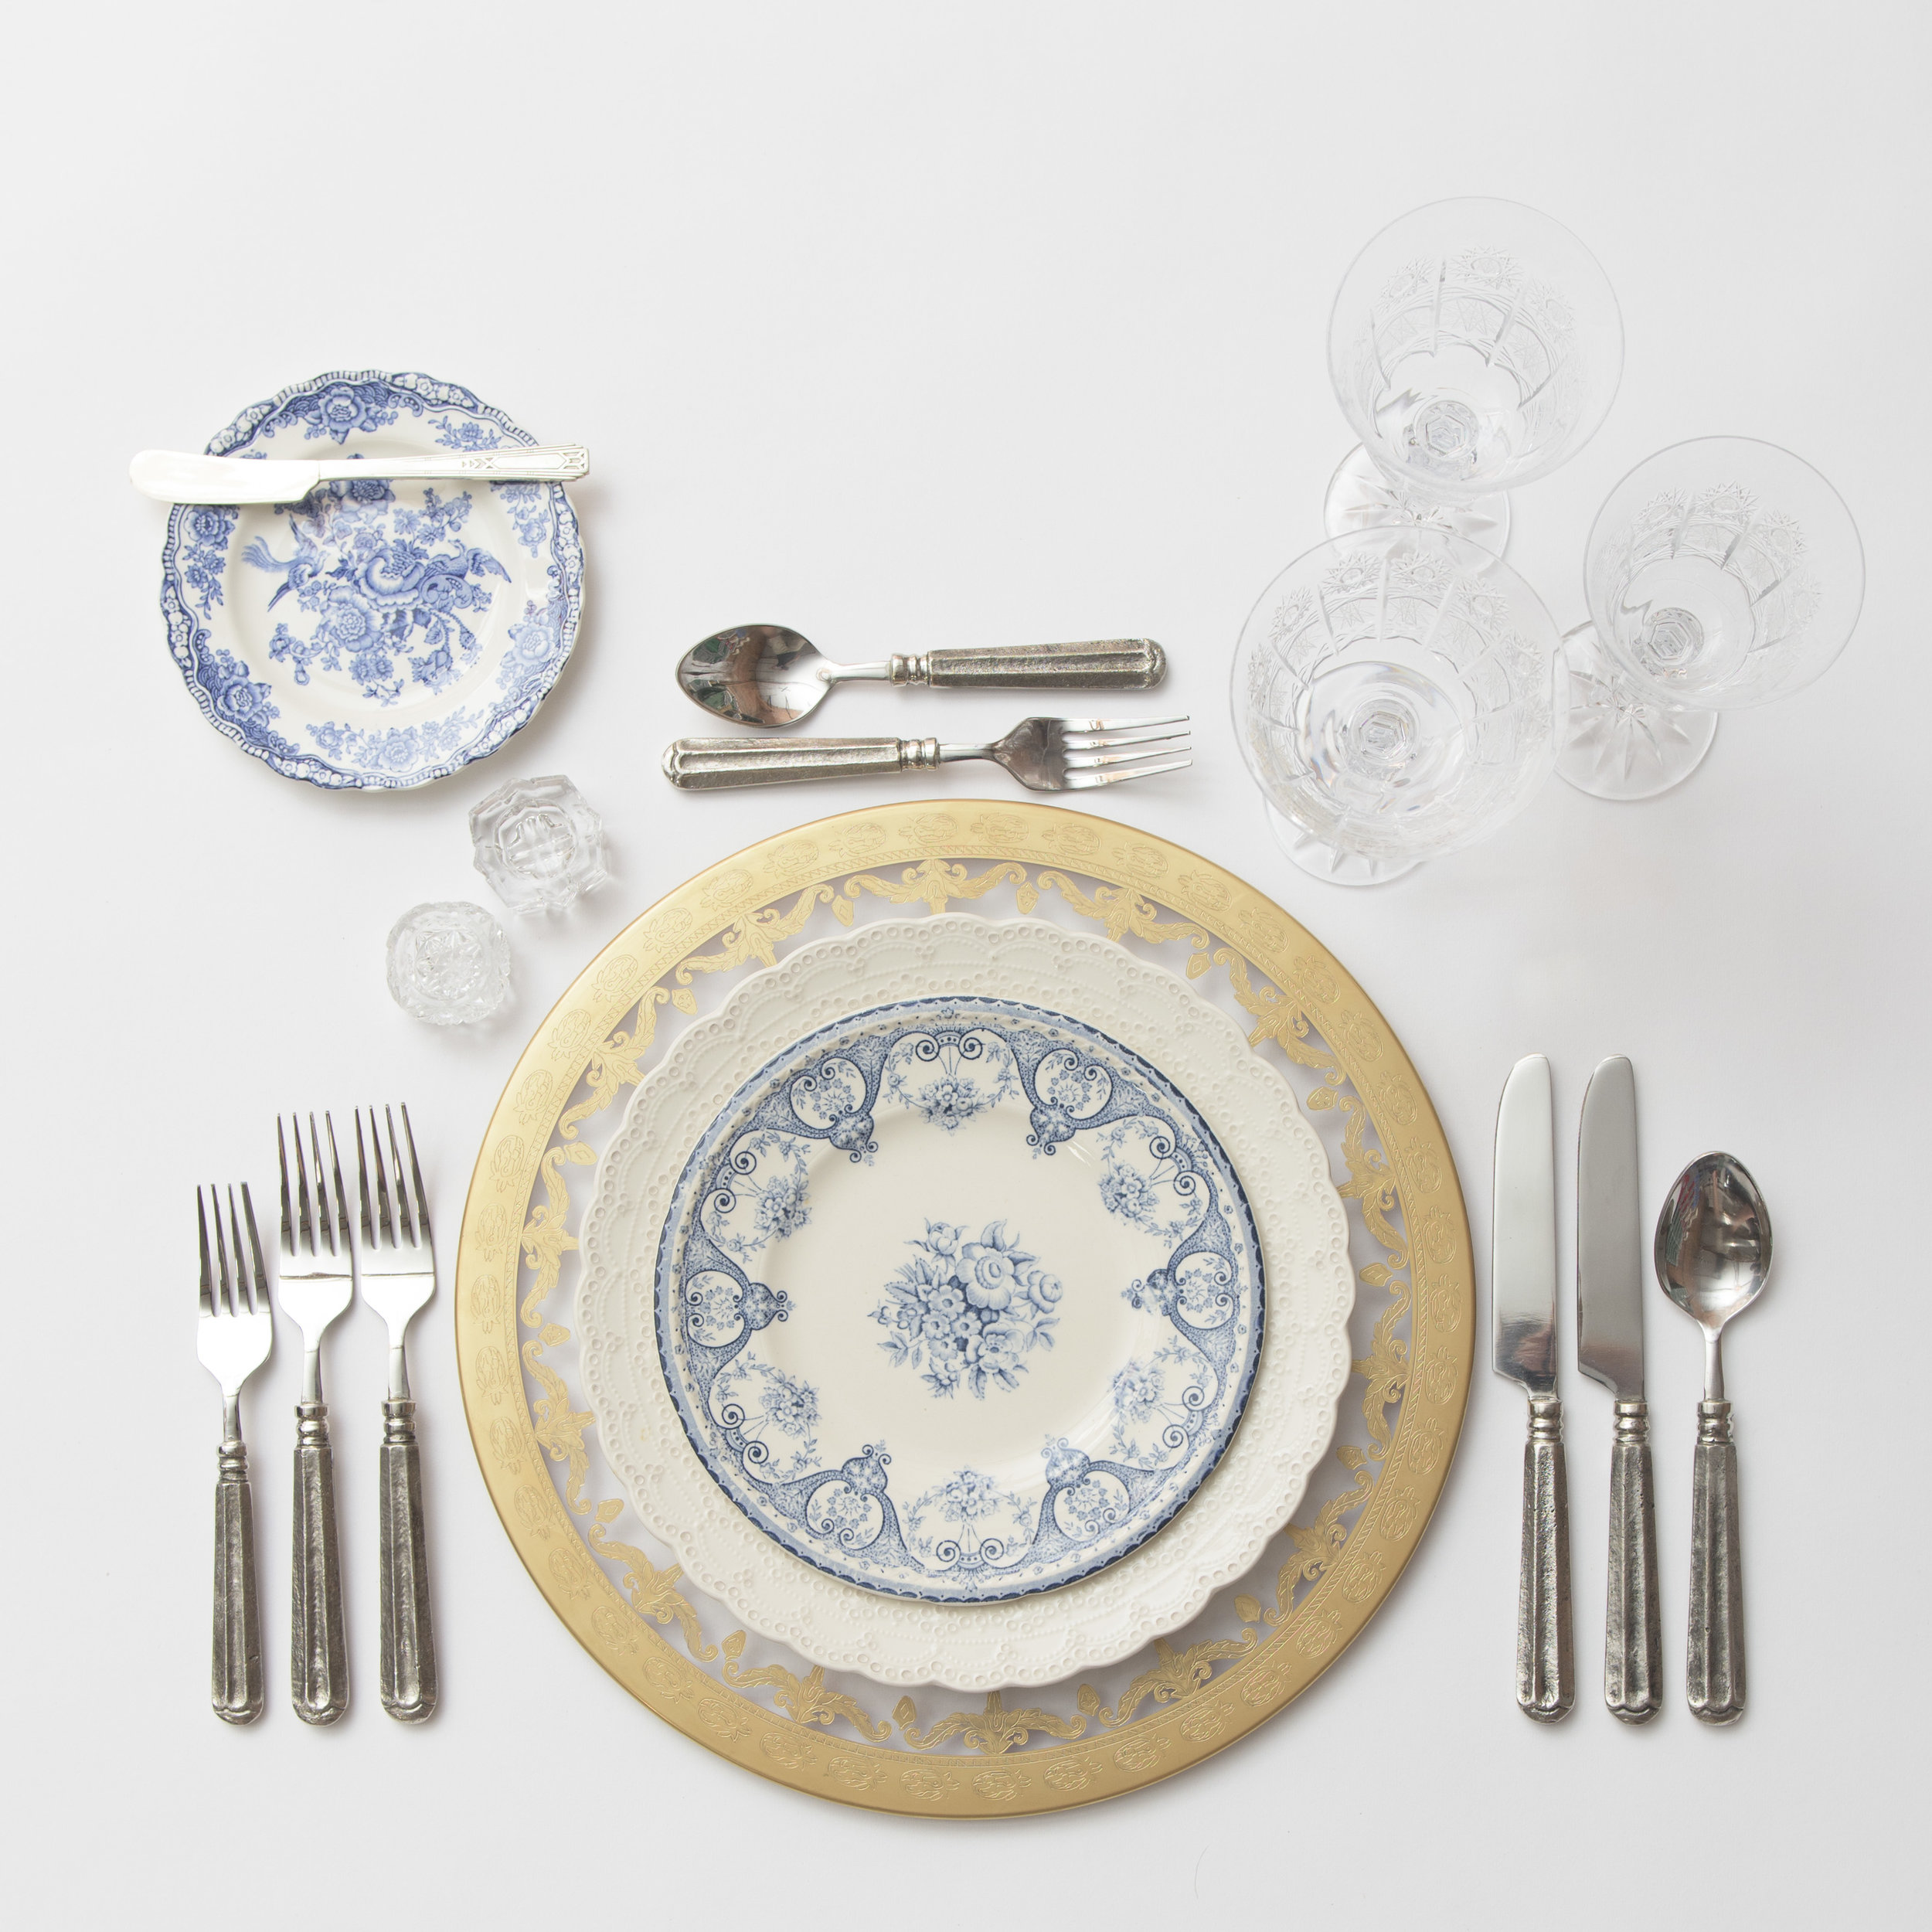 RENT: Versailles Glass Chargers in 24k Gold + White Collection Vintage China +Blue Garden Collection Vintage China + Tuscan Flatware in Pewter + Czech Crystal Stemware + Antique Crystal Salt Cellars